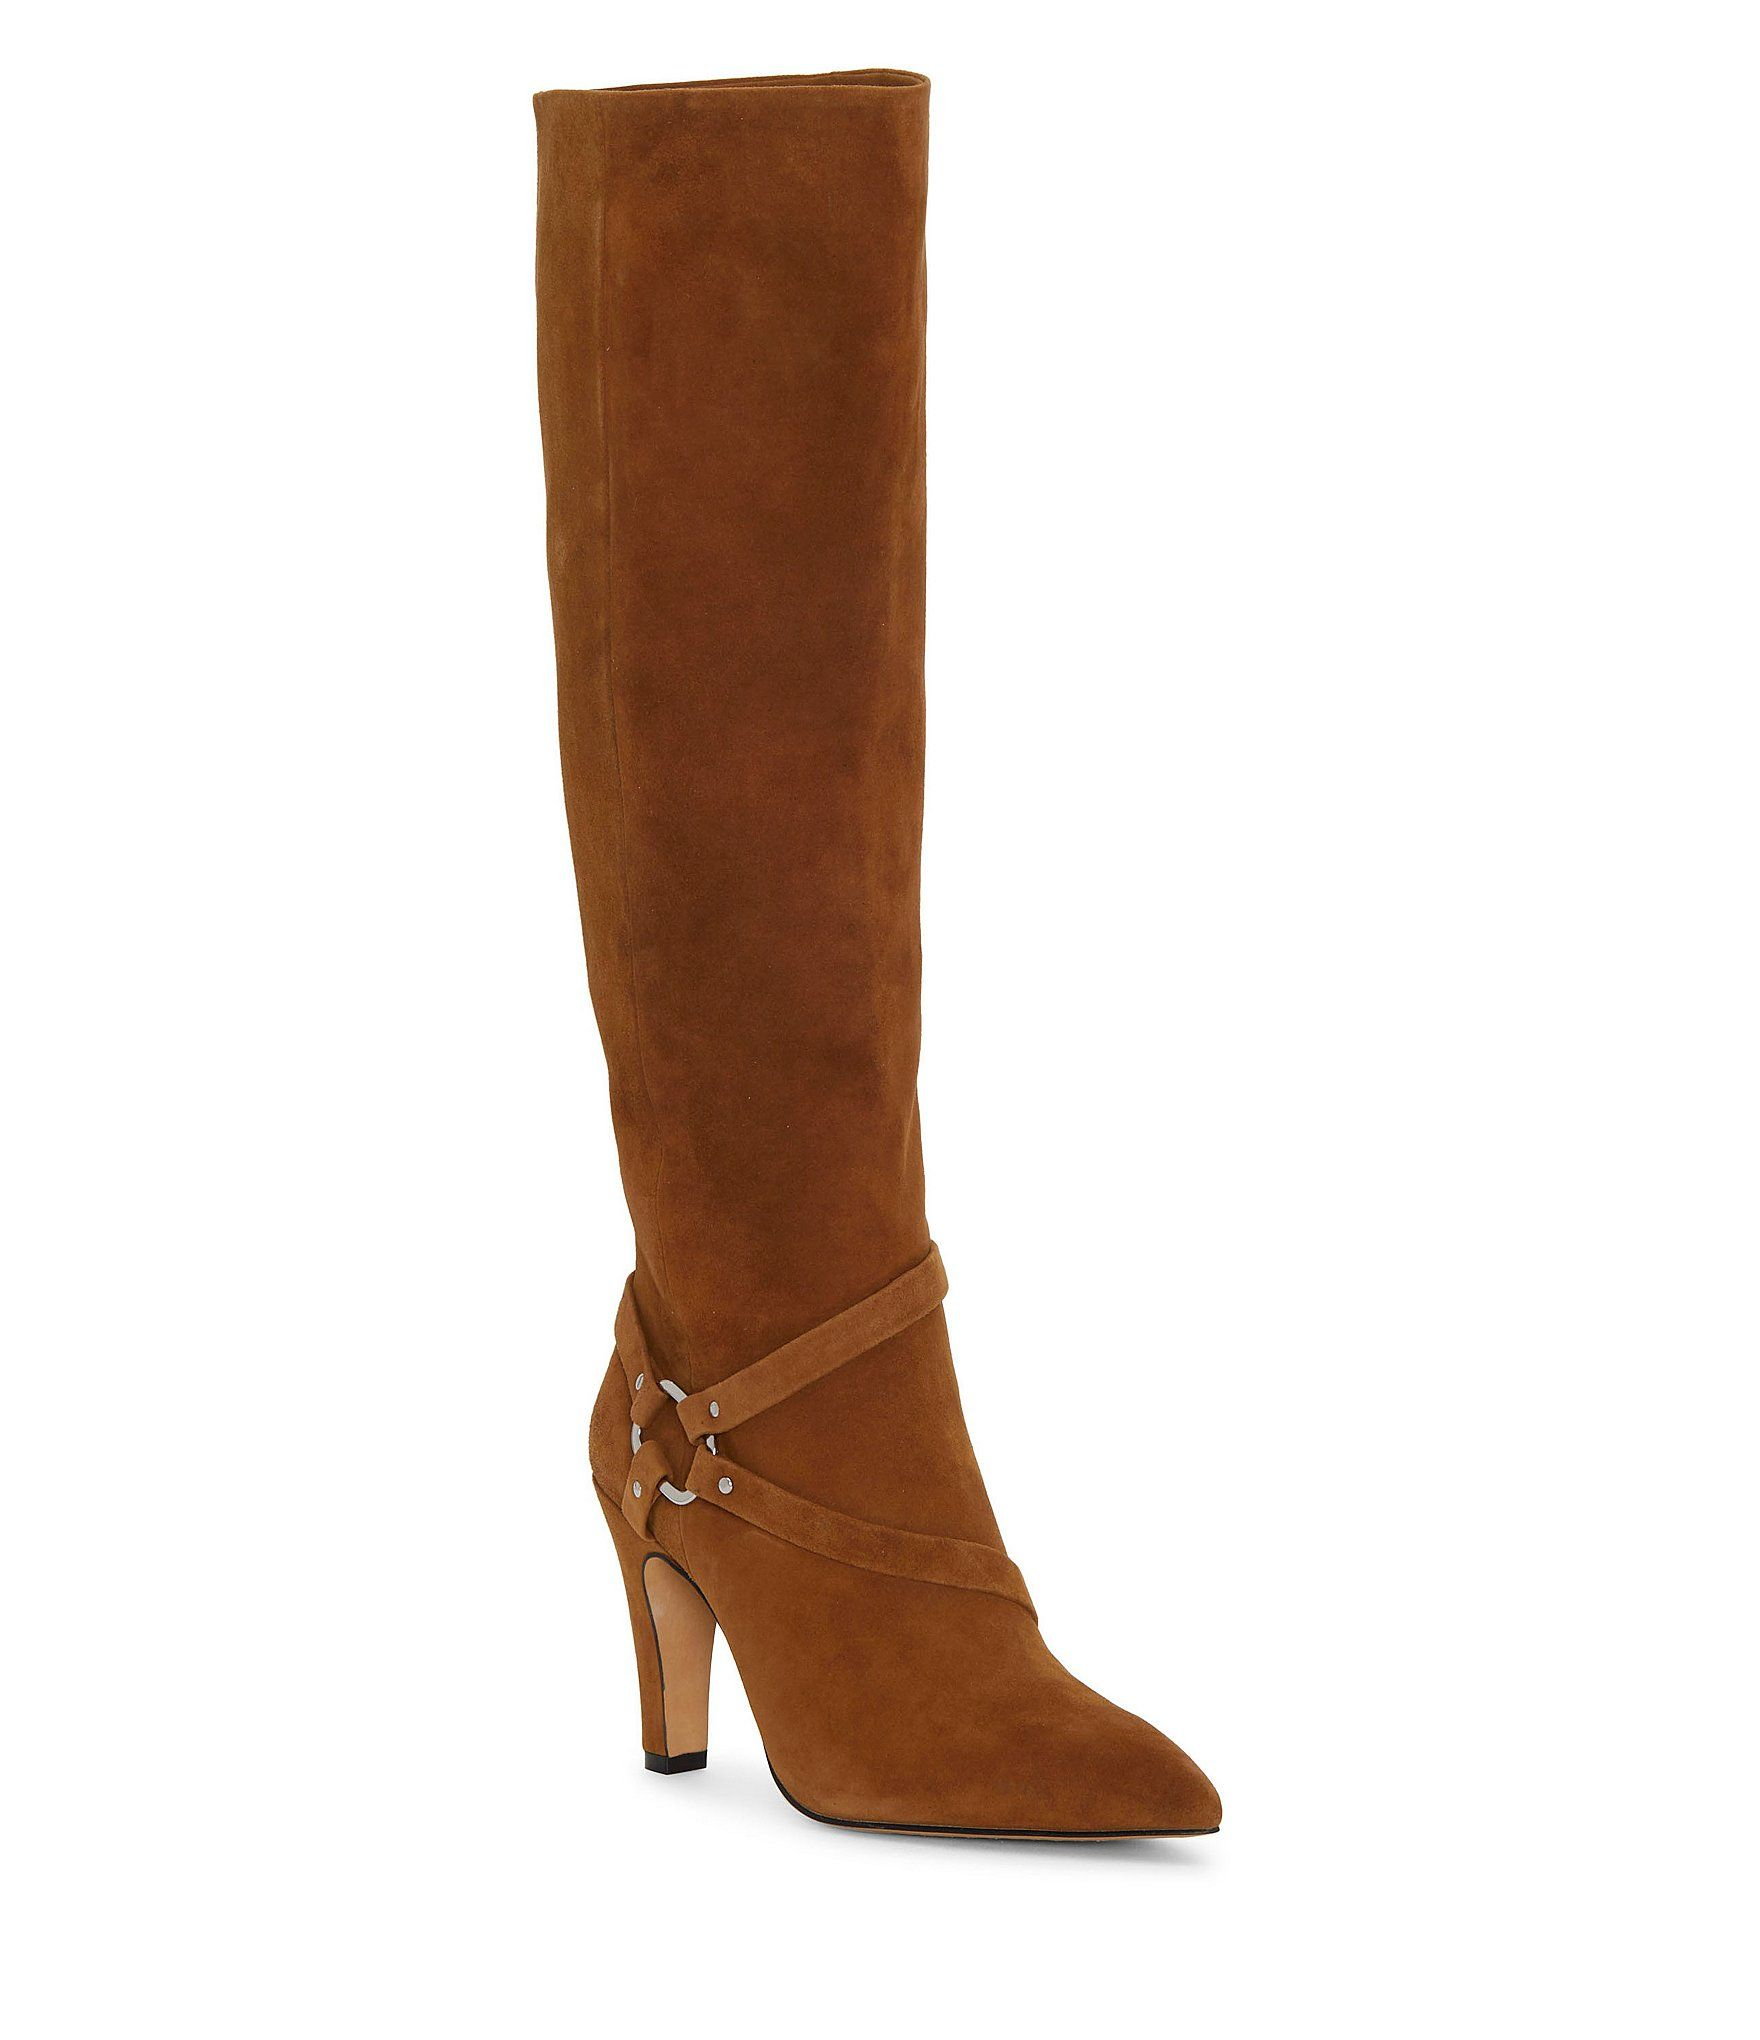 Vince Camuto Charmina Suede Stiletto Stovepipe Dress Harness Boots – Brown 9.5M